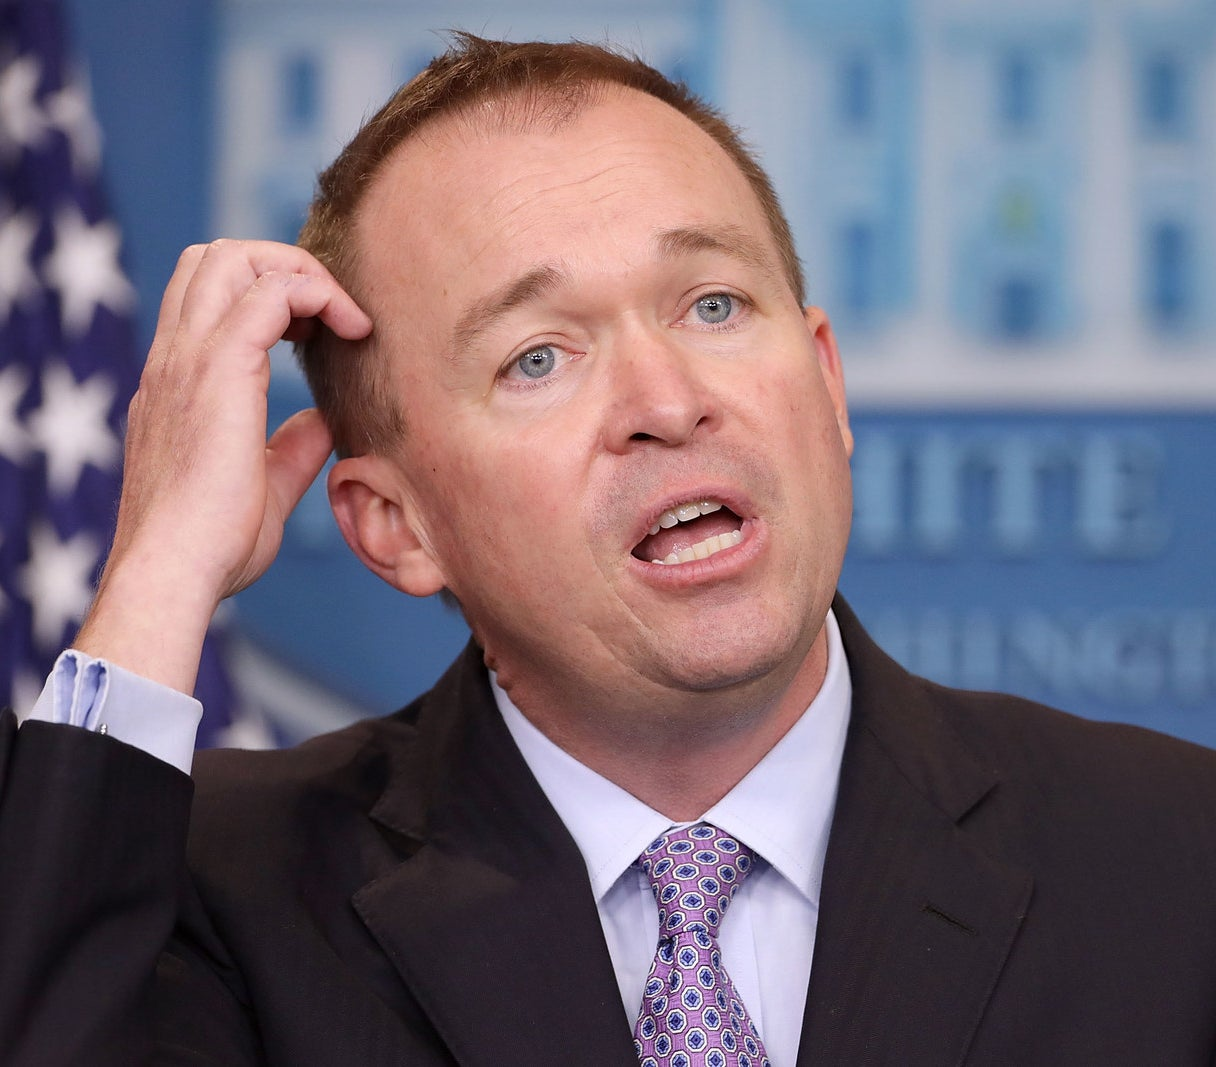 Office of Management and Budget Director and acting White House Chief of Staff Mick Mulvaney